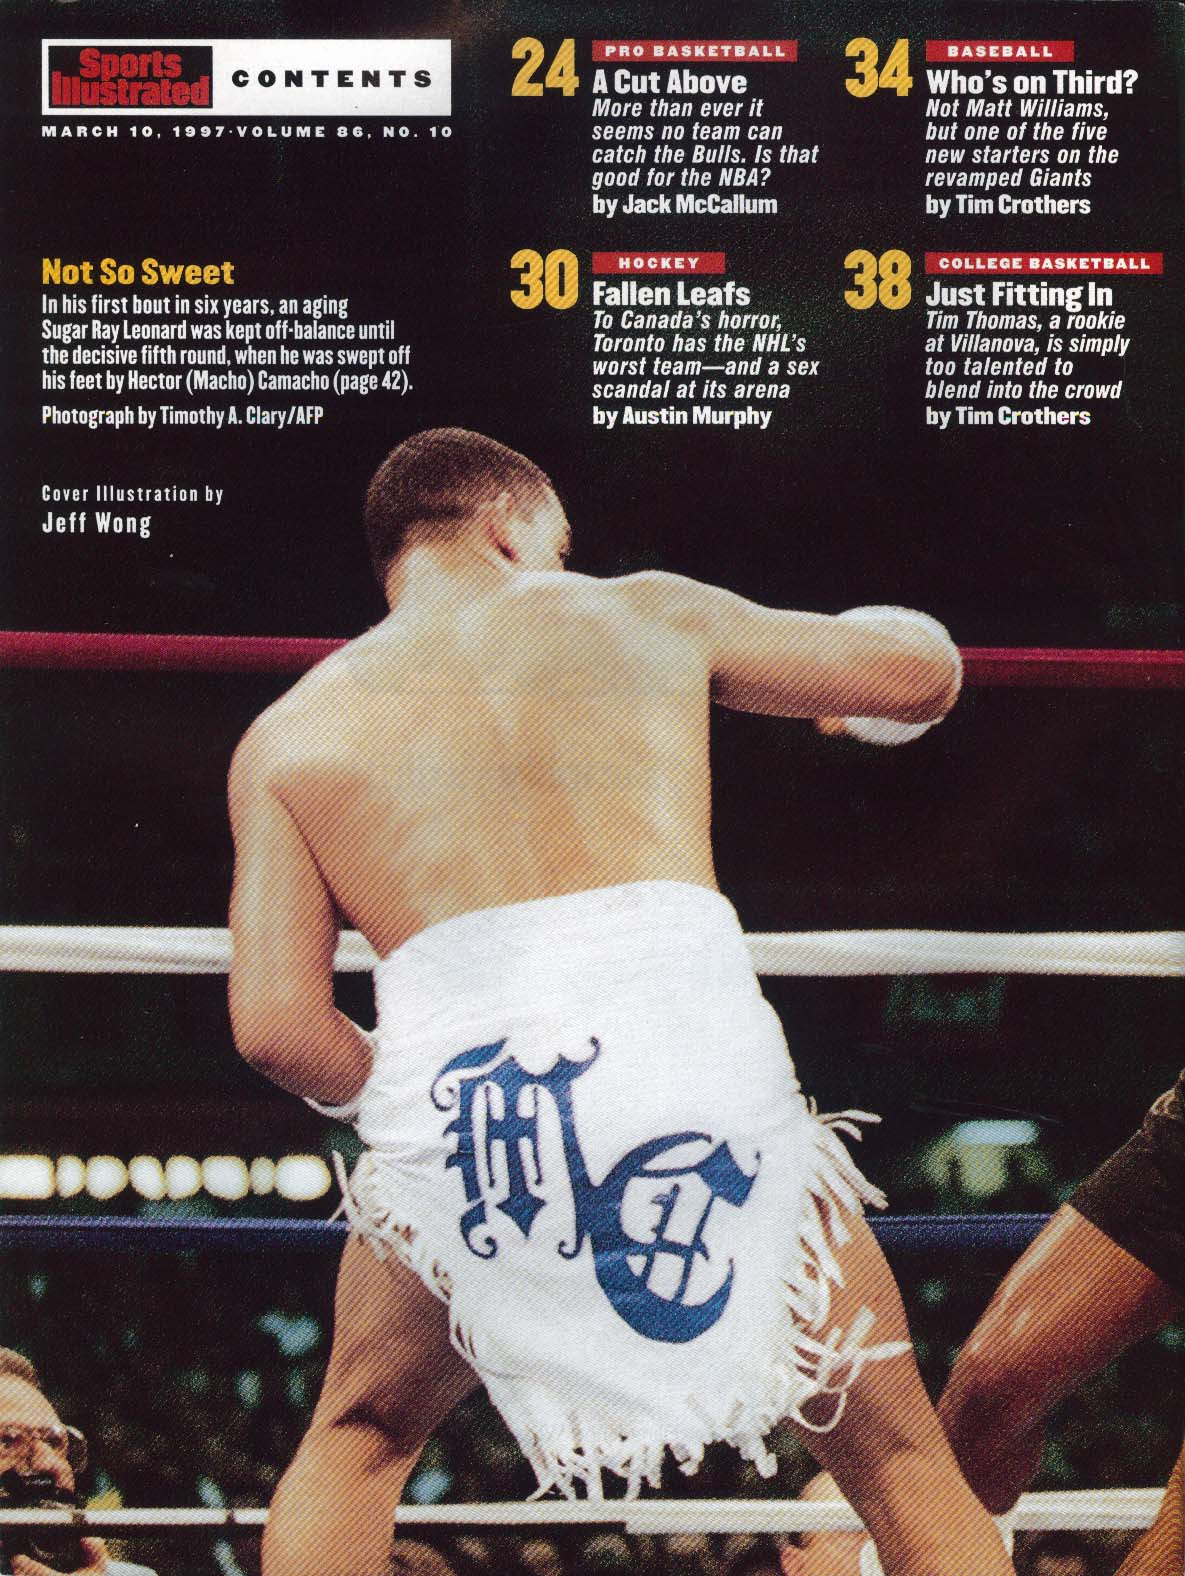 SPORTS ILLUSTRATED Michael Jordan Sugar Ray Leonard Hector Camacho ++ 3/10 1997